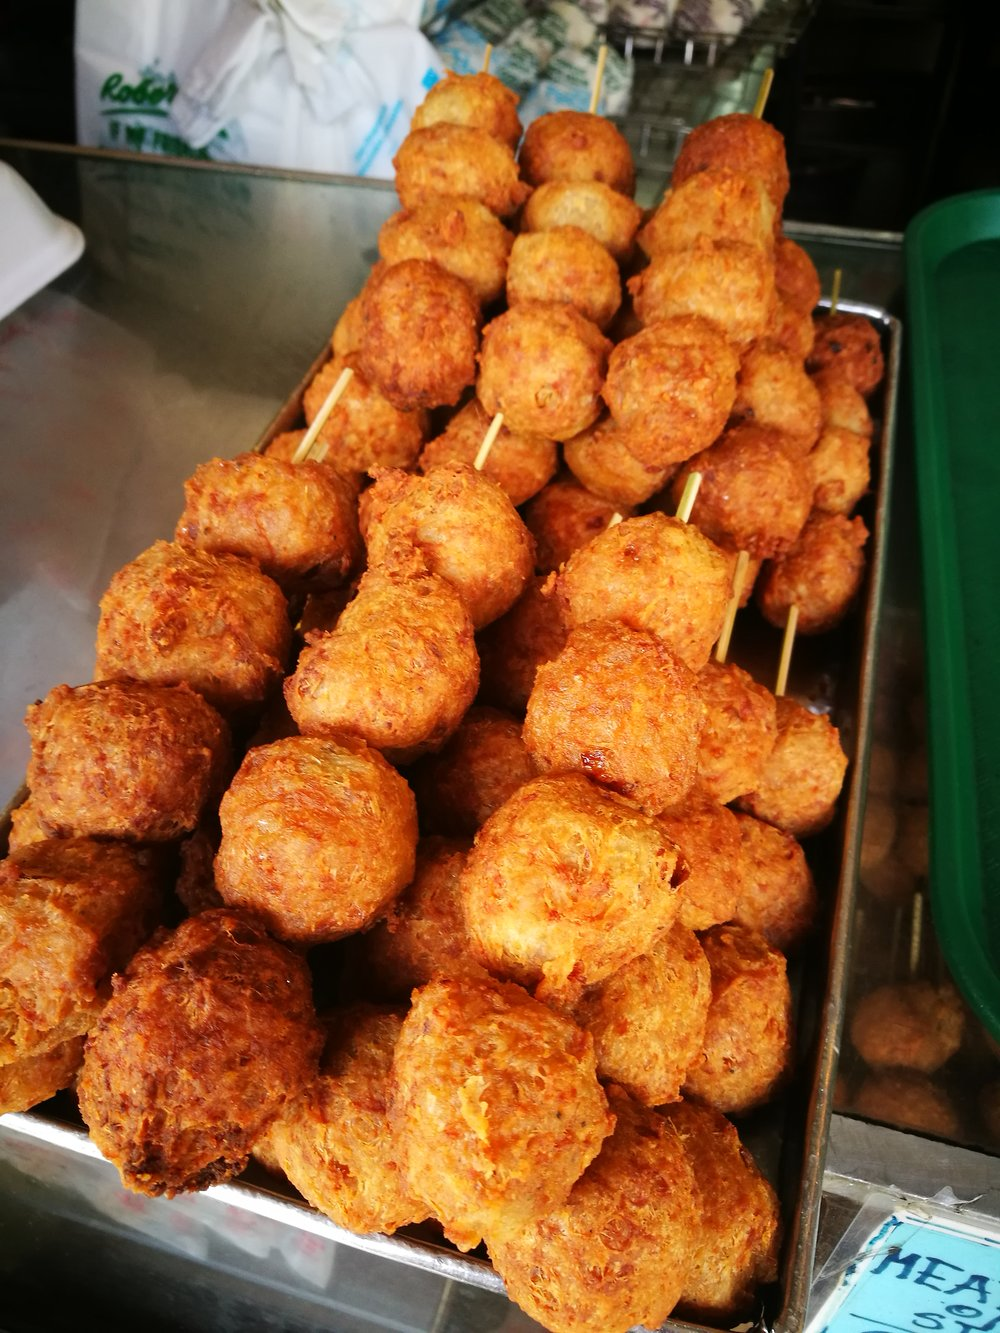 Fried meatballs at Roberto's are an option aside from their popular Queen siopao.